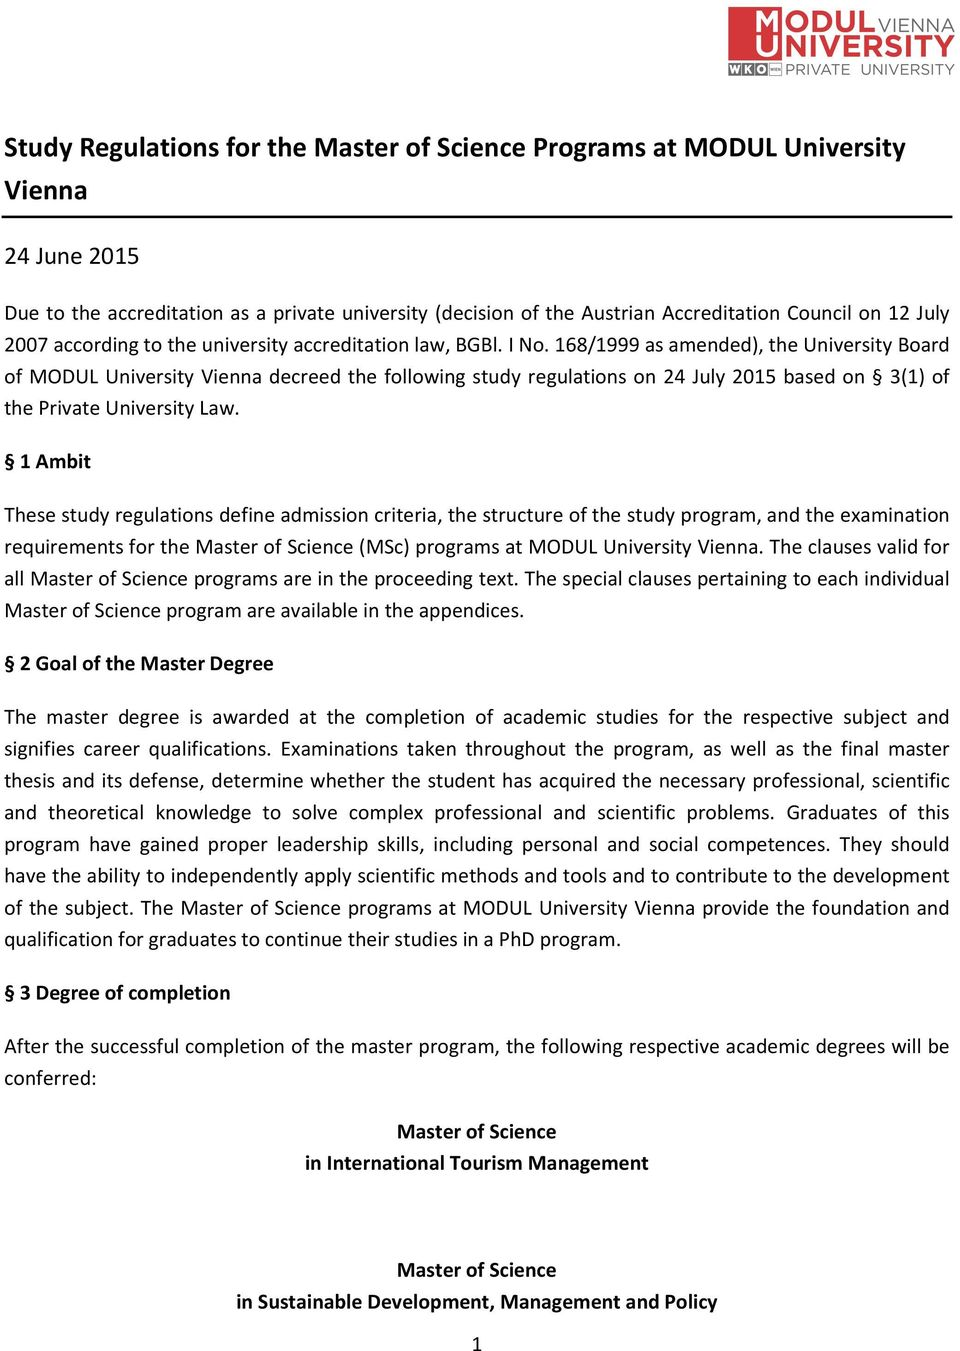 168/1999 as amended), the University Board of MODUL University Vienna decreed the following study regulations on 24 July 2015 based on 3(1) of the Private University Law.